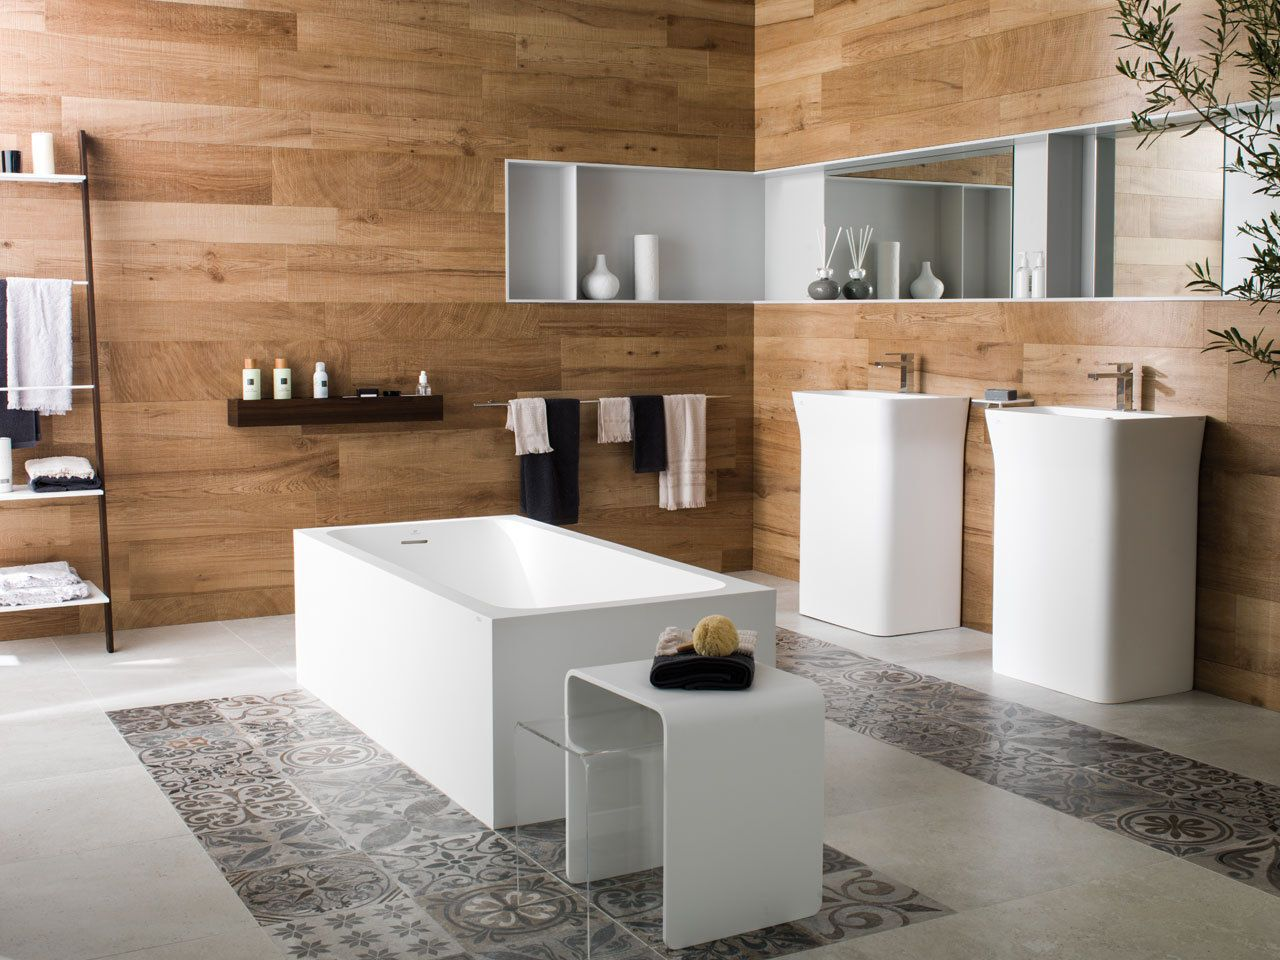 PORCELANOSA Ascot Teca Wood Effect Porcelain Tiles - 15.8m2 ...